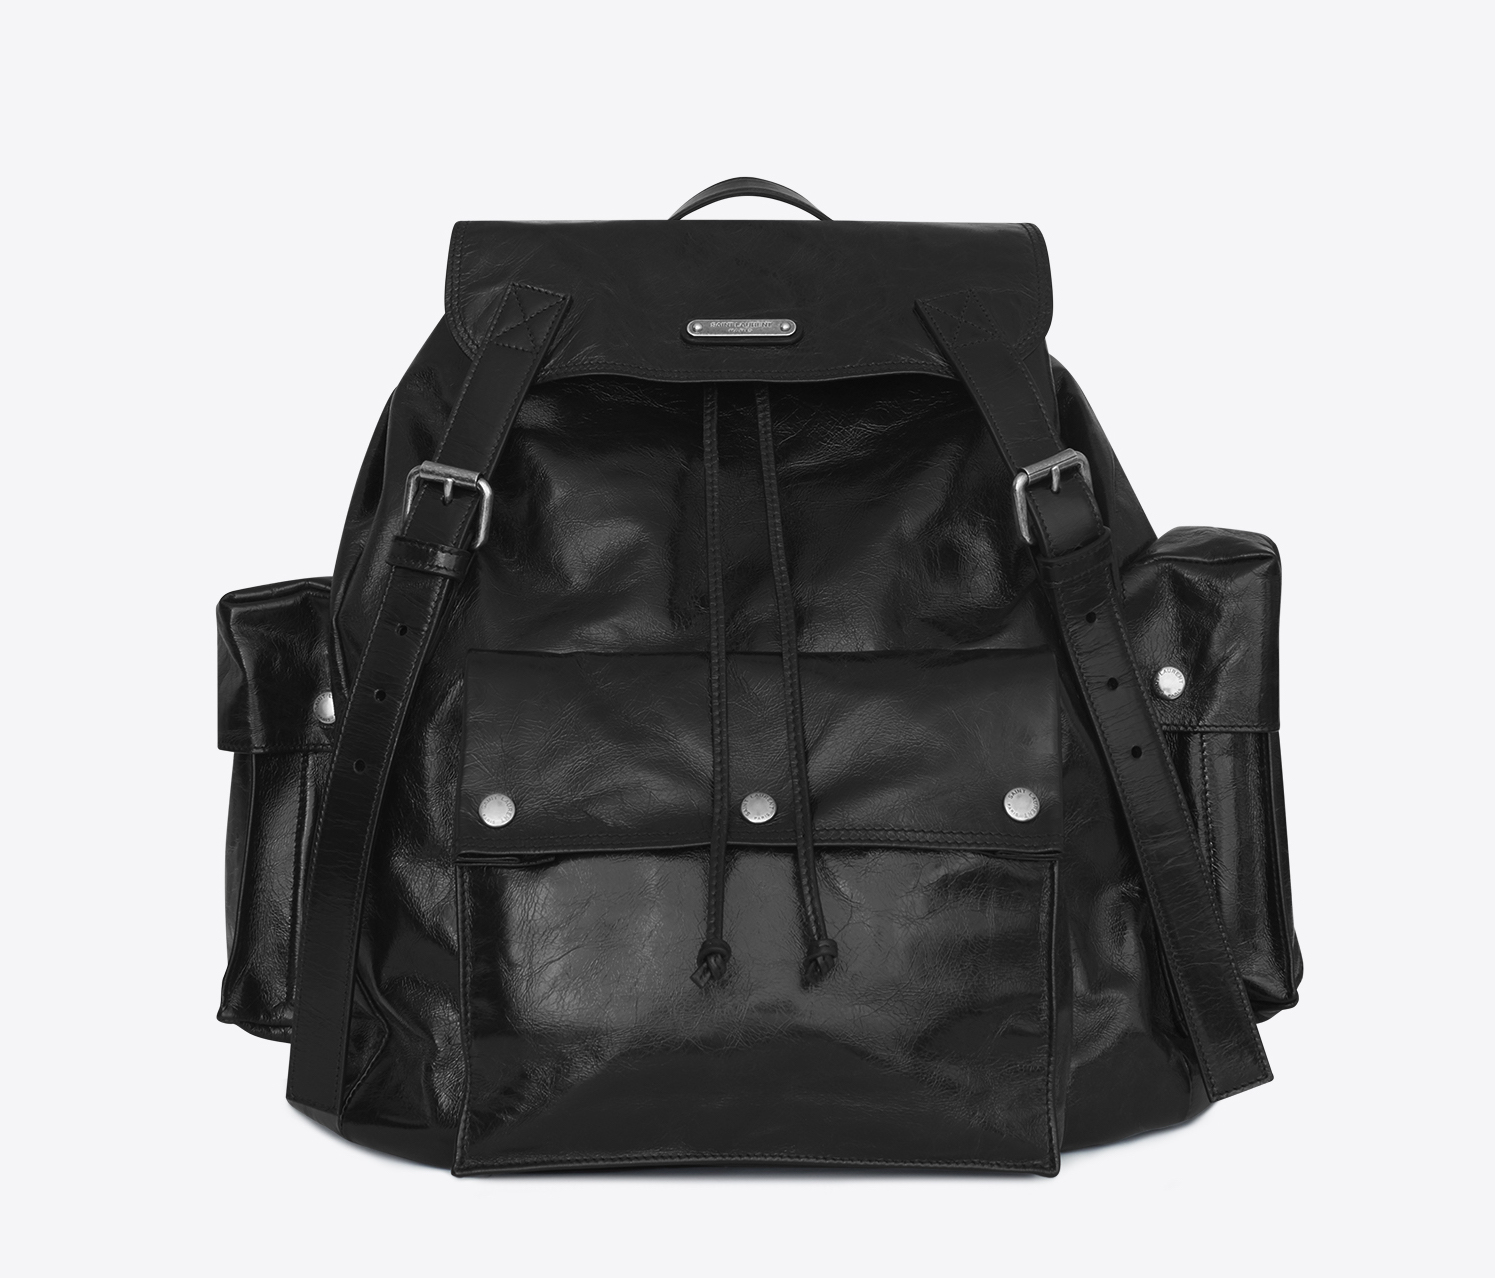 Saint Laurent Noe backpacks